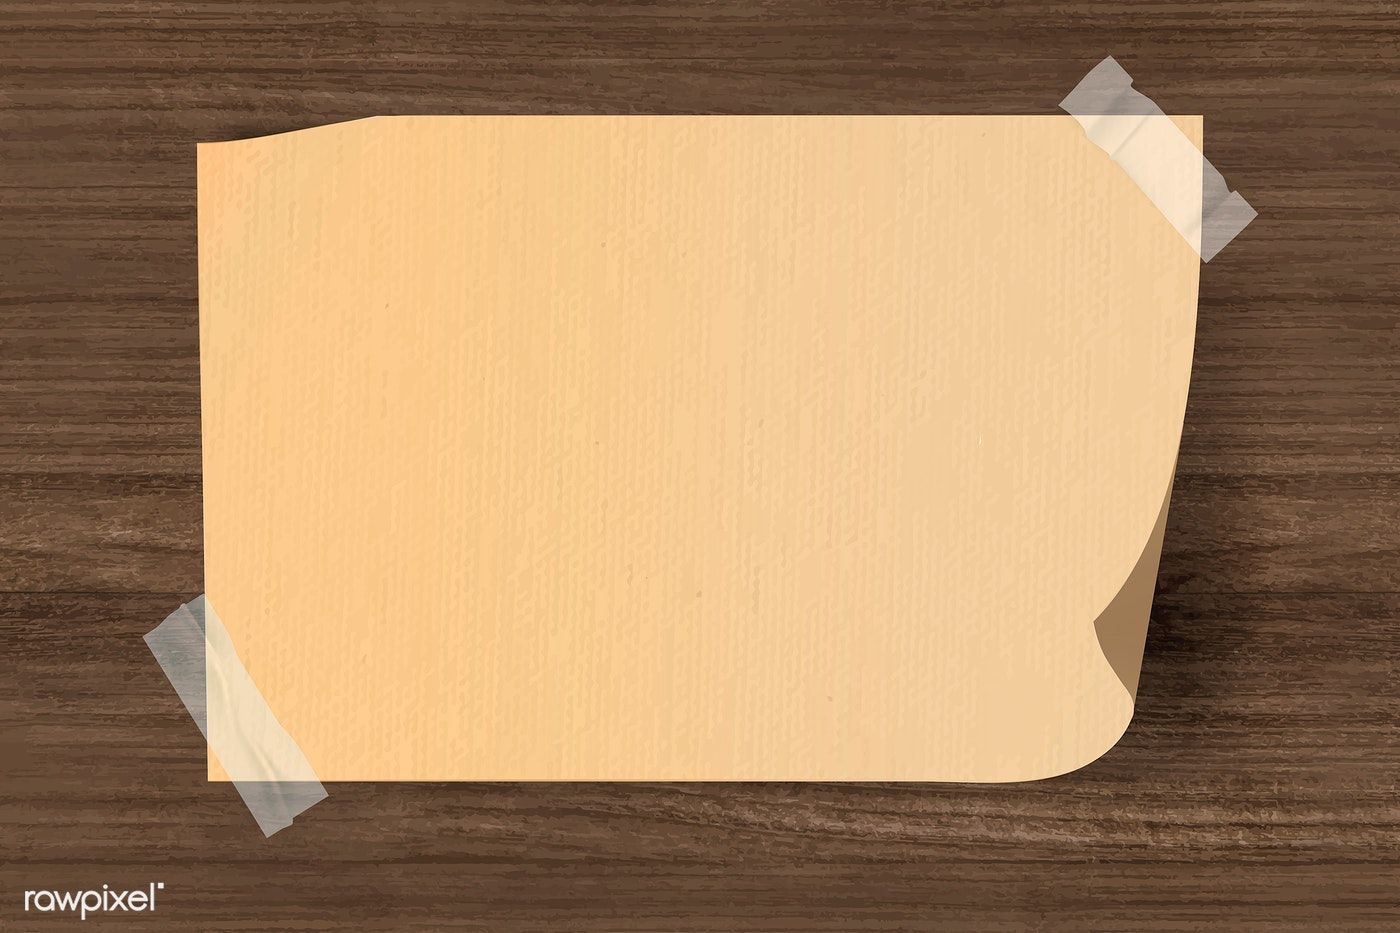 Vintage Brown Note Paper Taped On Wooden Background Vector Free Image By Rawpixel Com Kappy Kappy Vector Free Design Mockup Free Brown Note